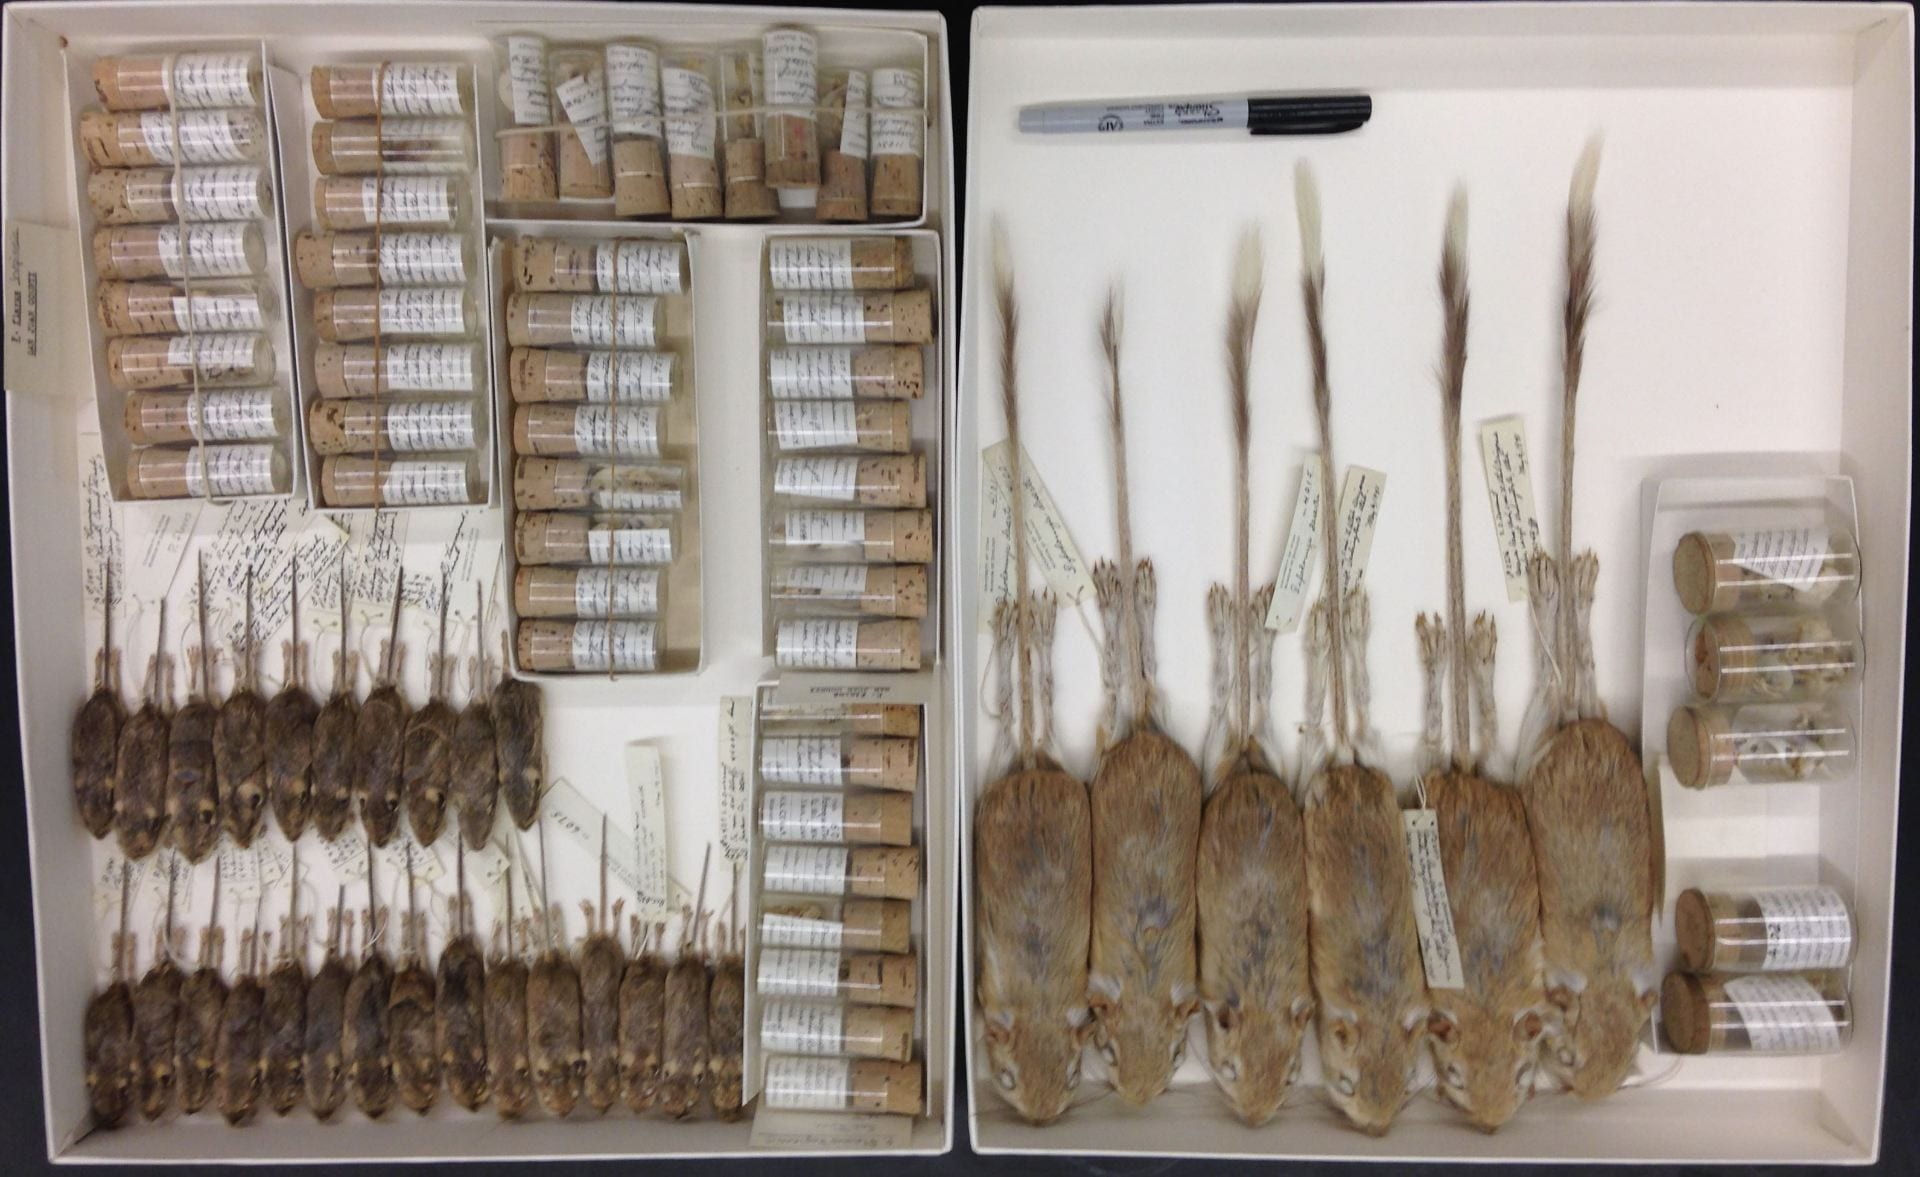 Photos of museum collection specimens of preserved silky pocket mice (Perognathus flavus) and kangaroo rats (Dipodomys ordii) used for stable isotope analysis. Skeletons are enclosed in small jars, and stuffed prepared skins are aligned in trays.